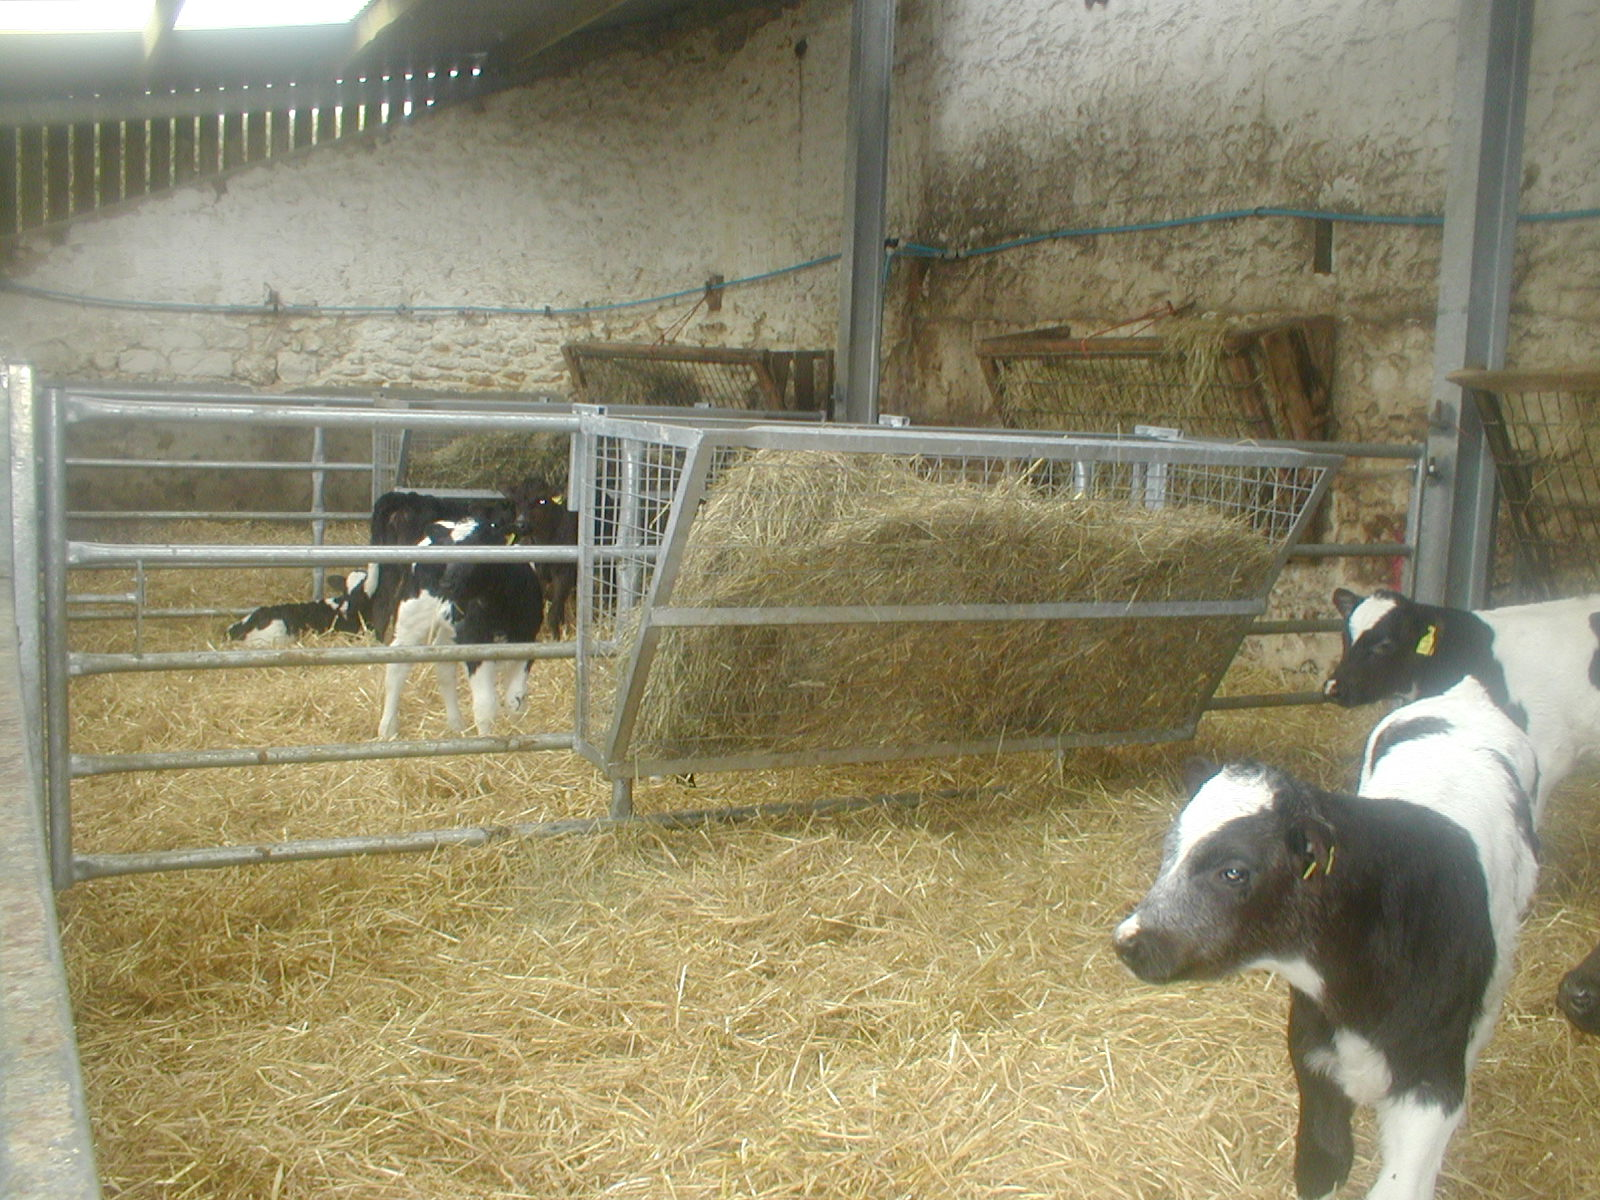 hay round to how bale a feeder cattle watch livestock of youtube panels protect fence with